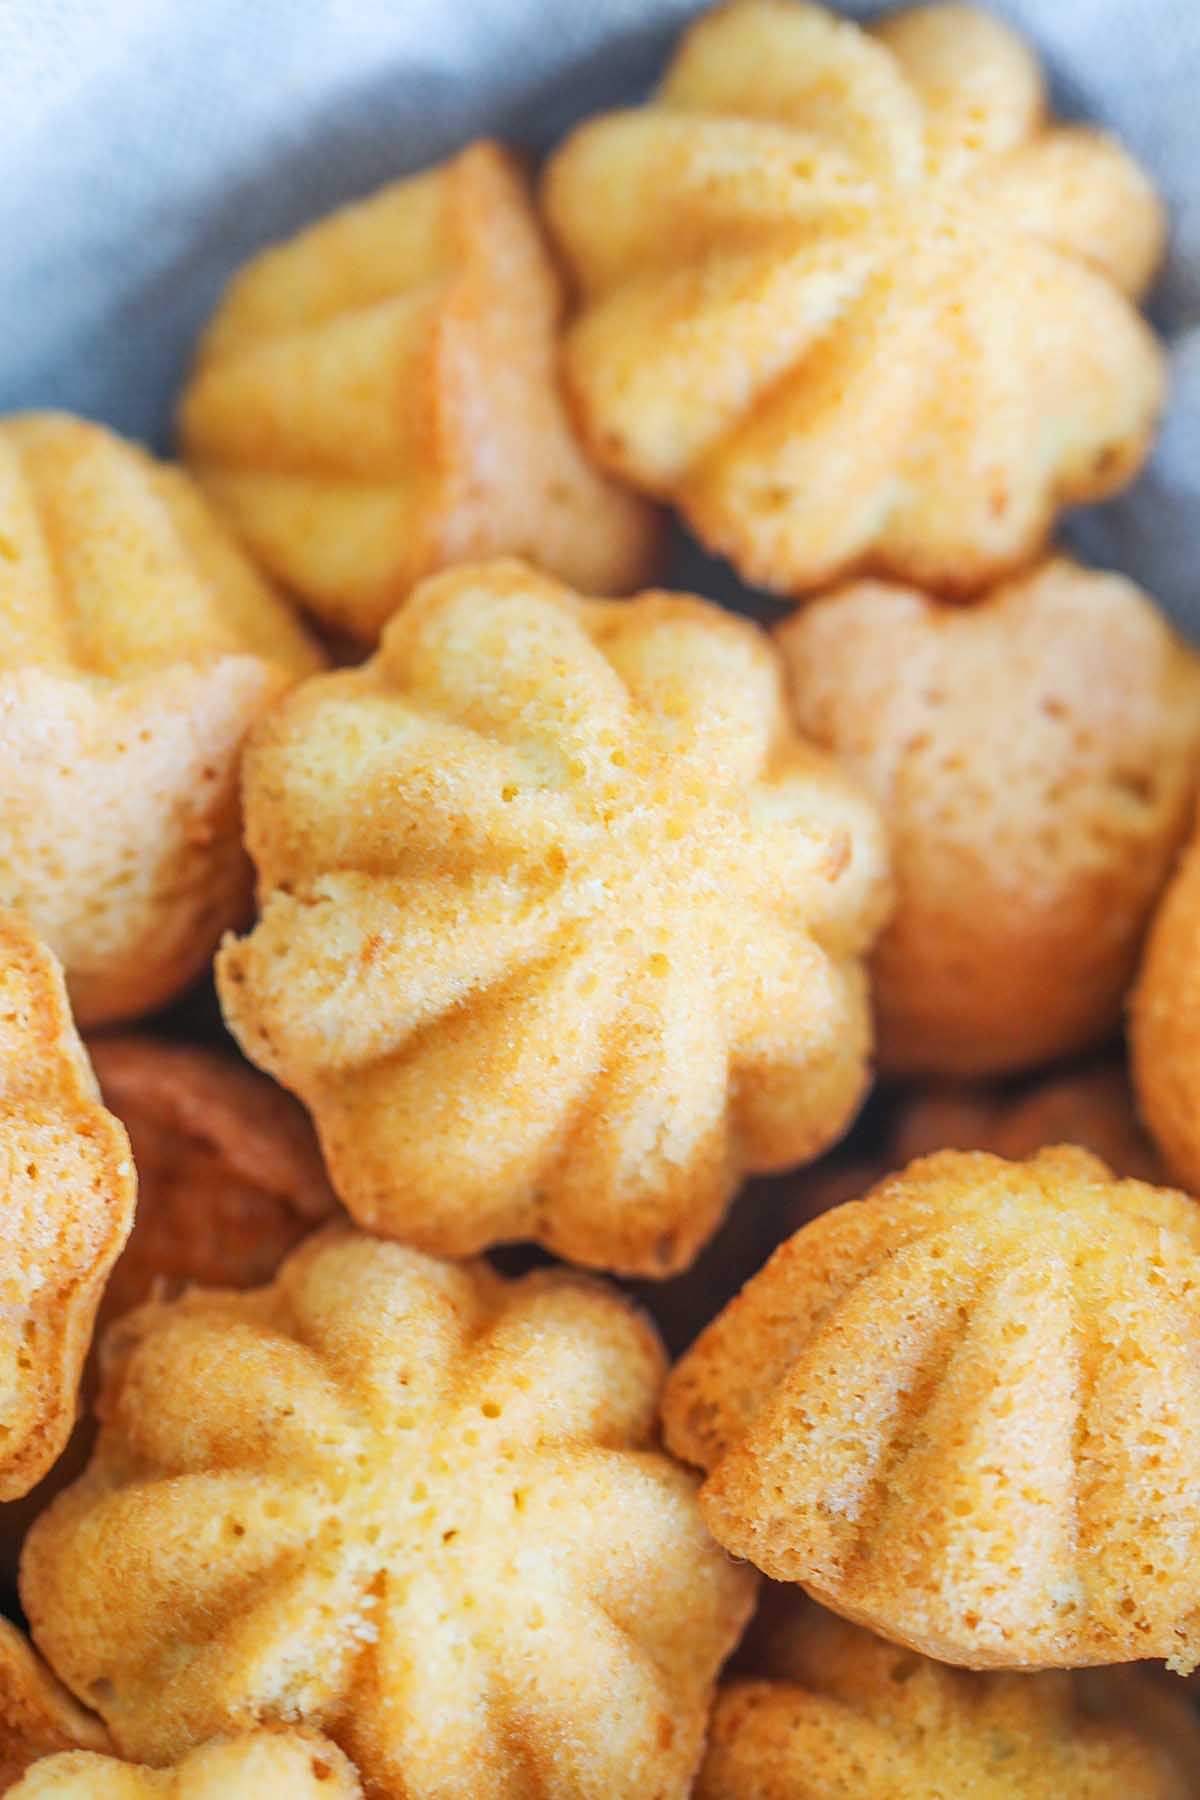 Traditional Kuih Bahulu cake baked in flower shapes.